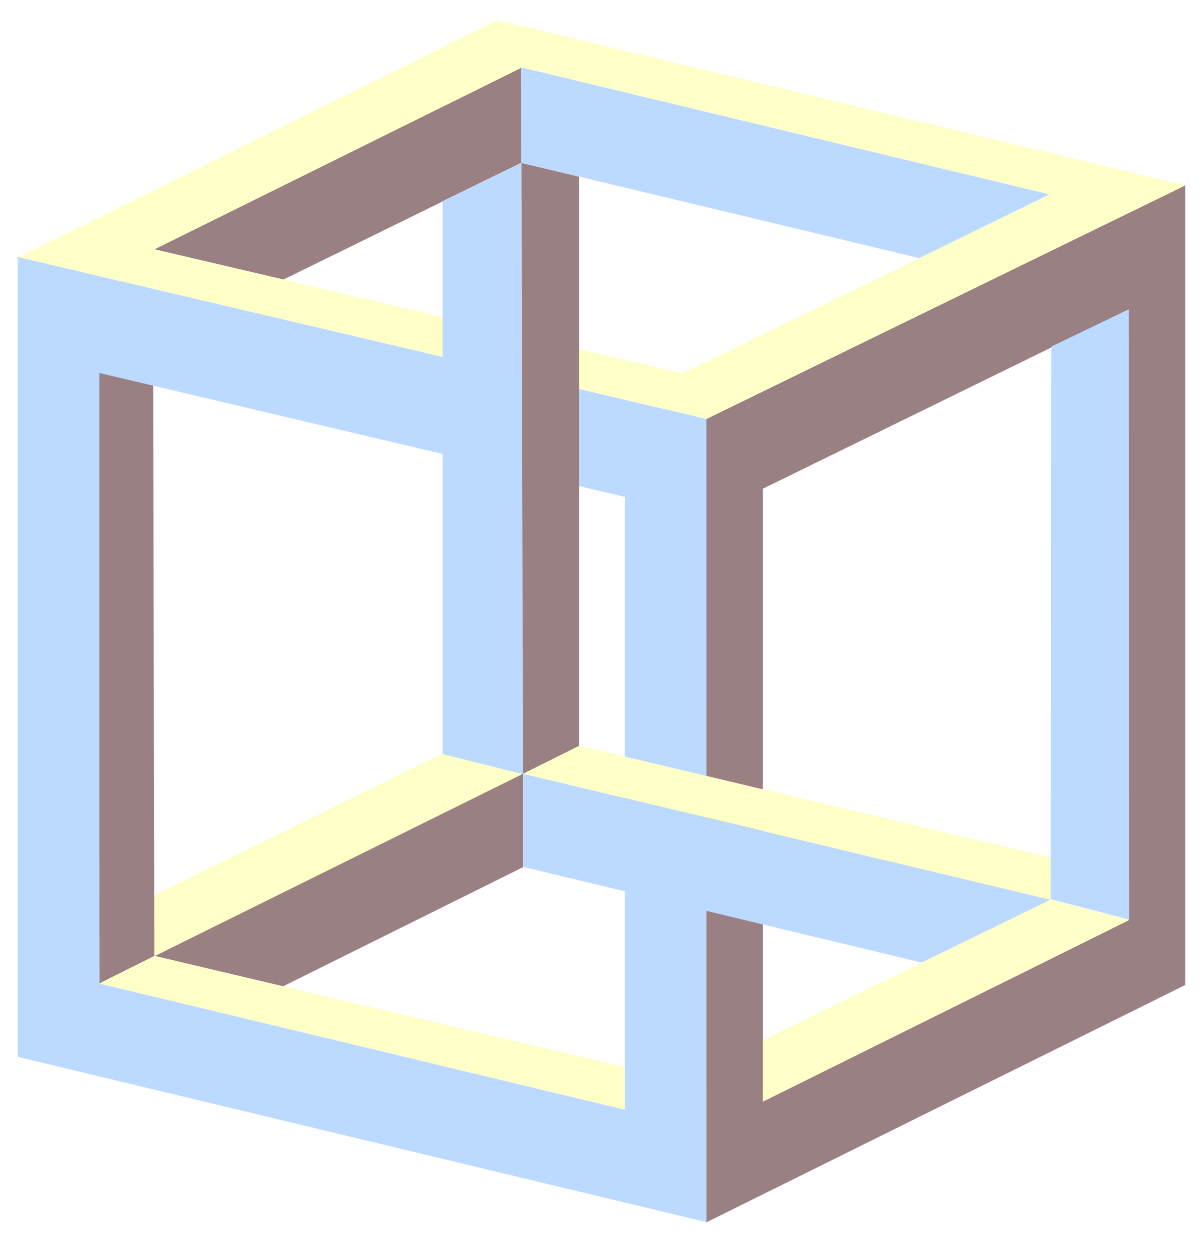 Impossible cube wikipedia . Square clipart solid